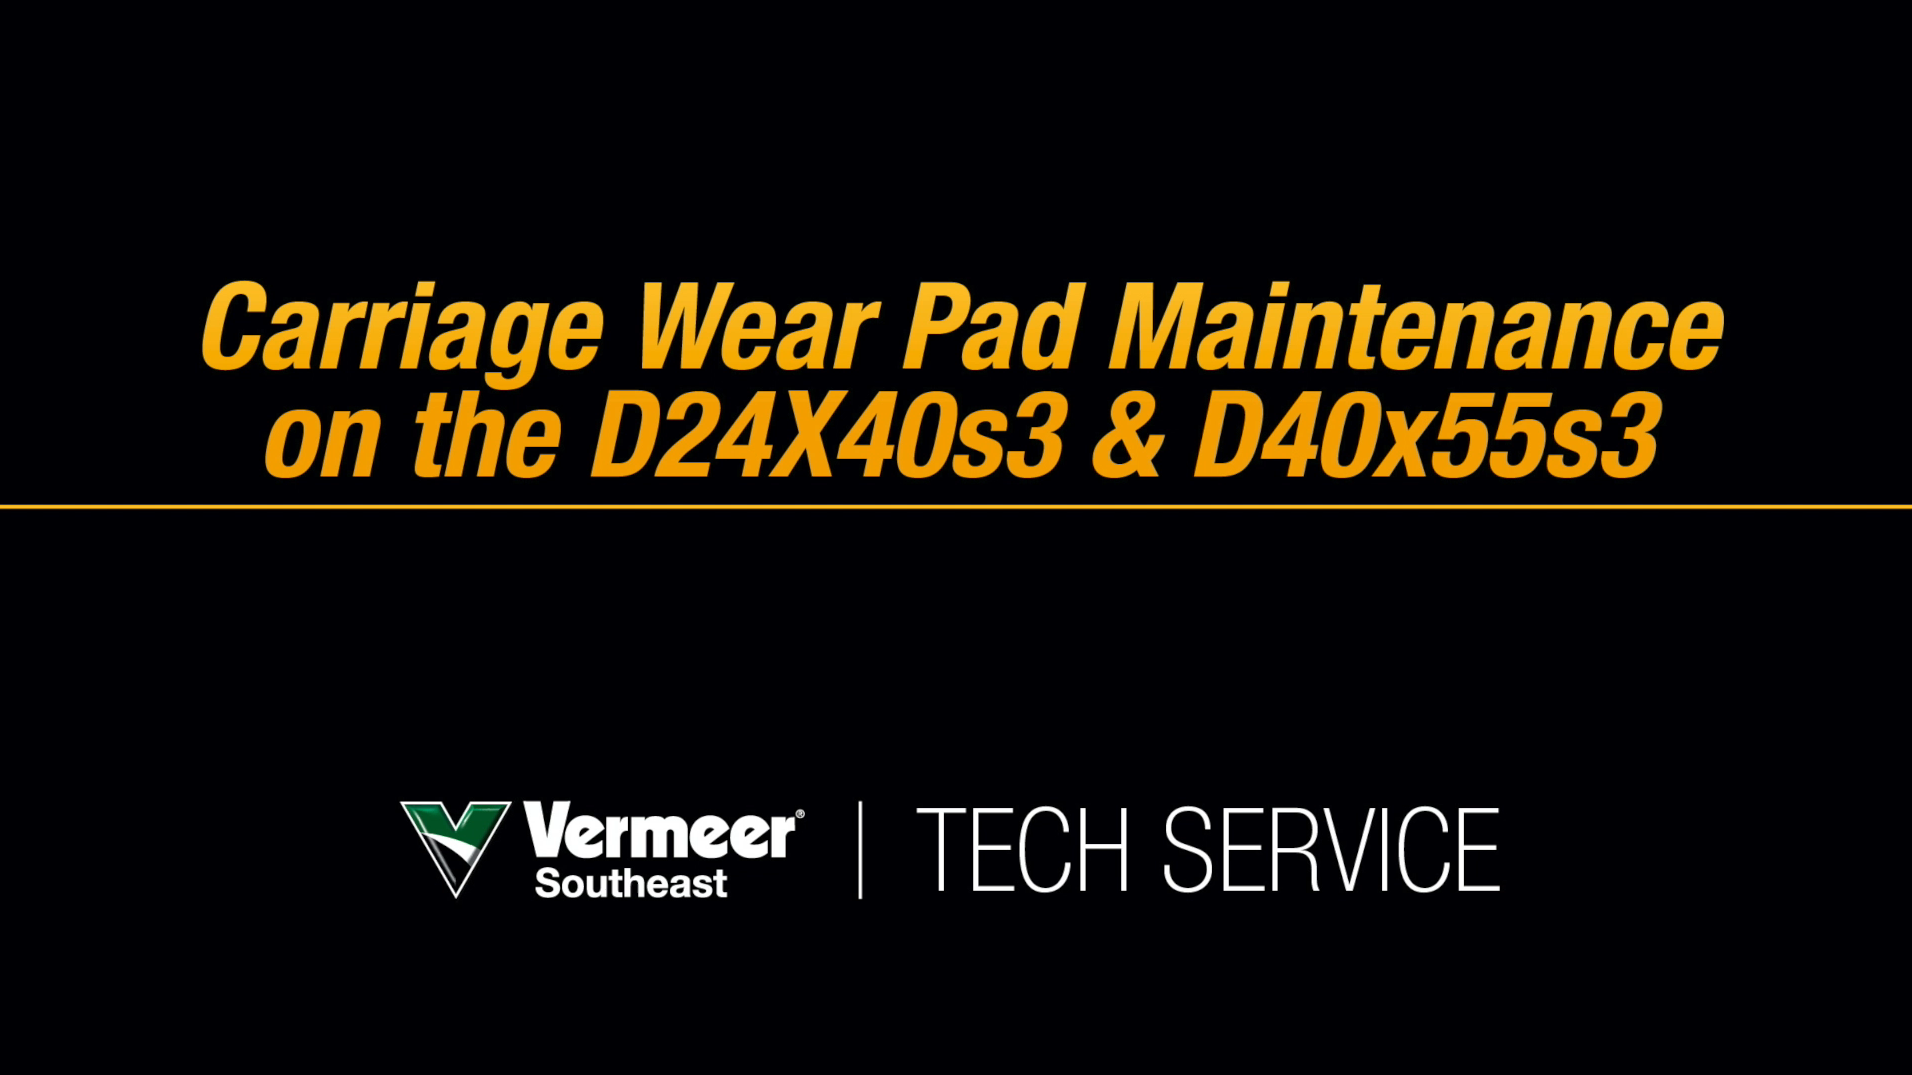 D23x30 S3 and D40x55 S3 Carriage Wear Pad Maintenance